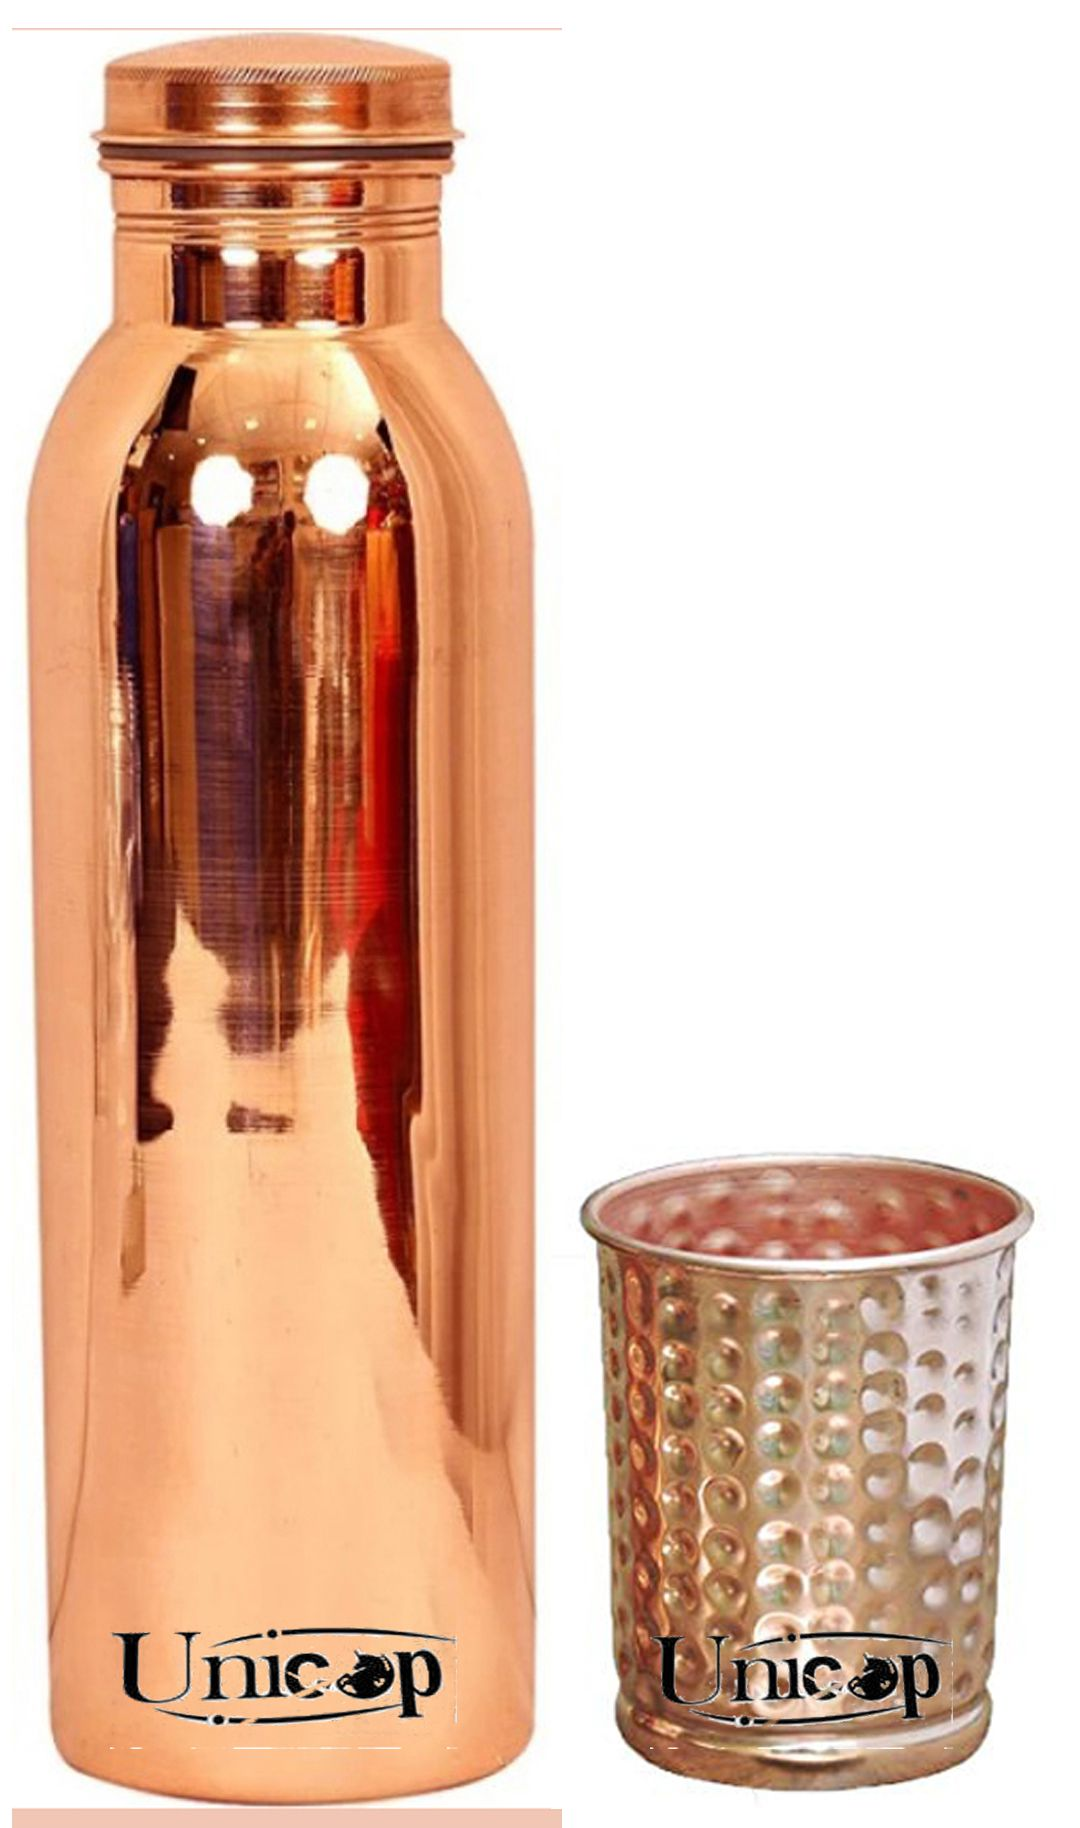 UNICOP Copper Bottle Gift 2 Pcs Lemon set